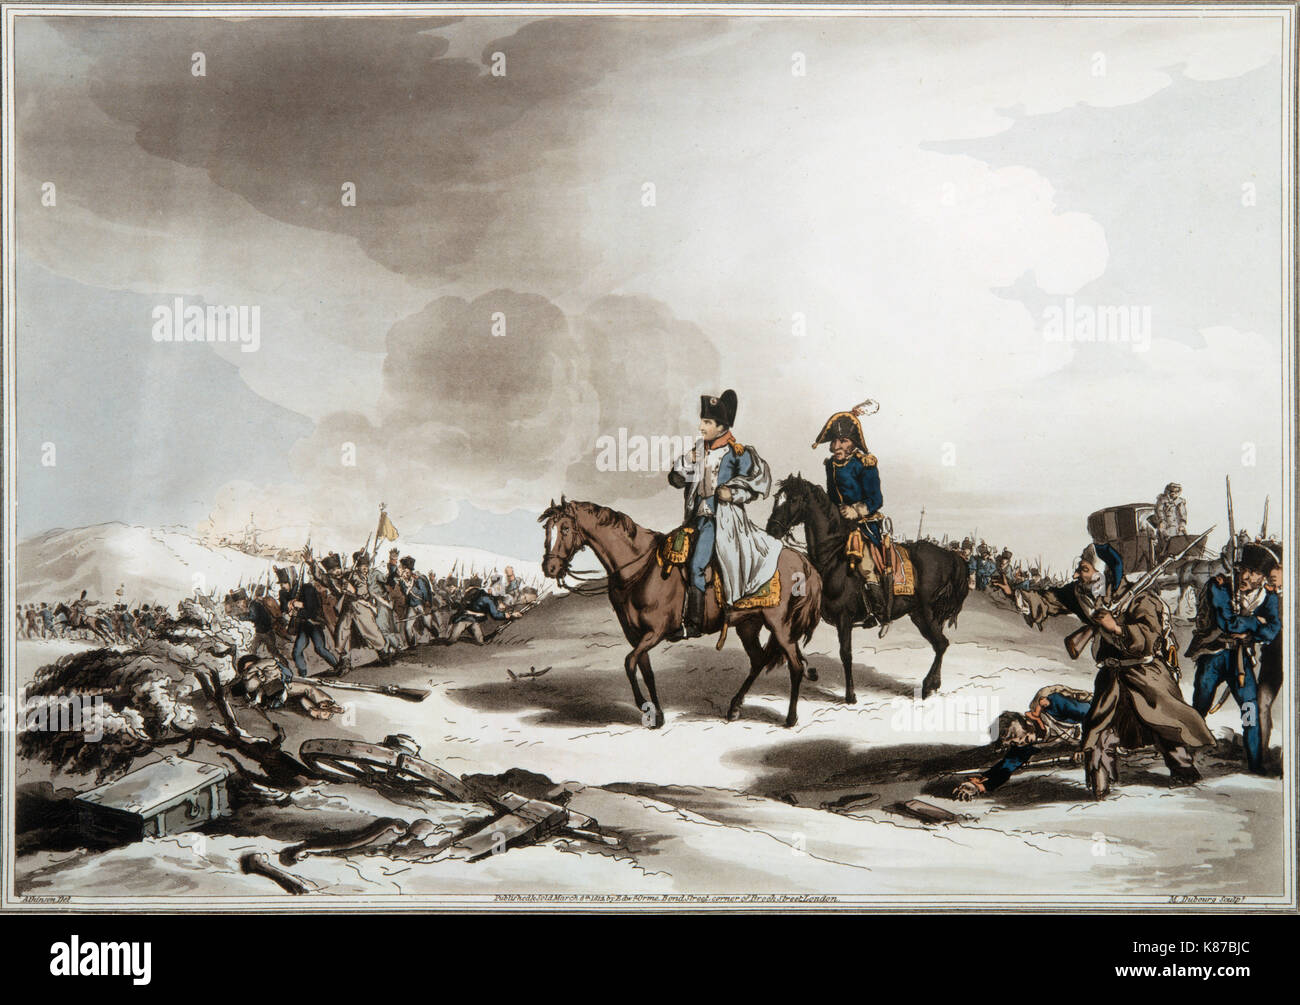 napoleon bonaparte in russia 2 december: napoleon defeats russian and austrian forces at the battle of austerlitz 26 december: napoleon signs the treaty of pressburg with austria in this treaty the defeated austrians surrender their italian territory of the region of veneto in northern italy to the french.